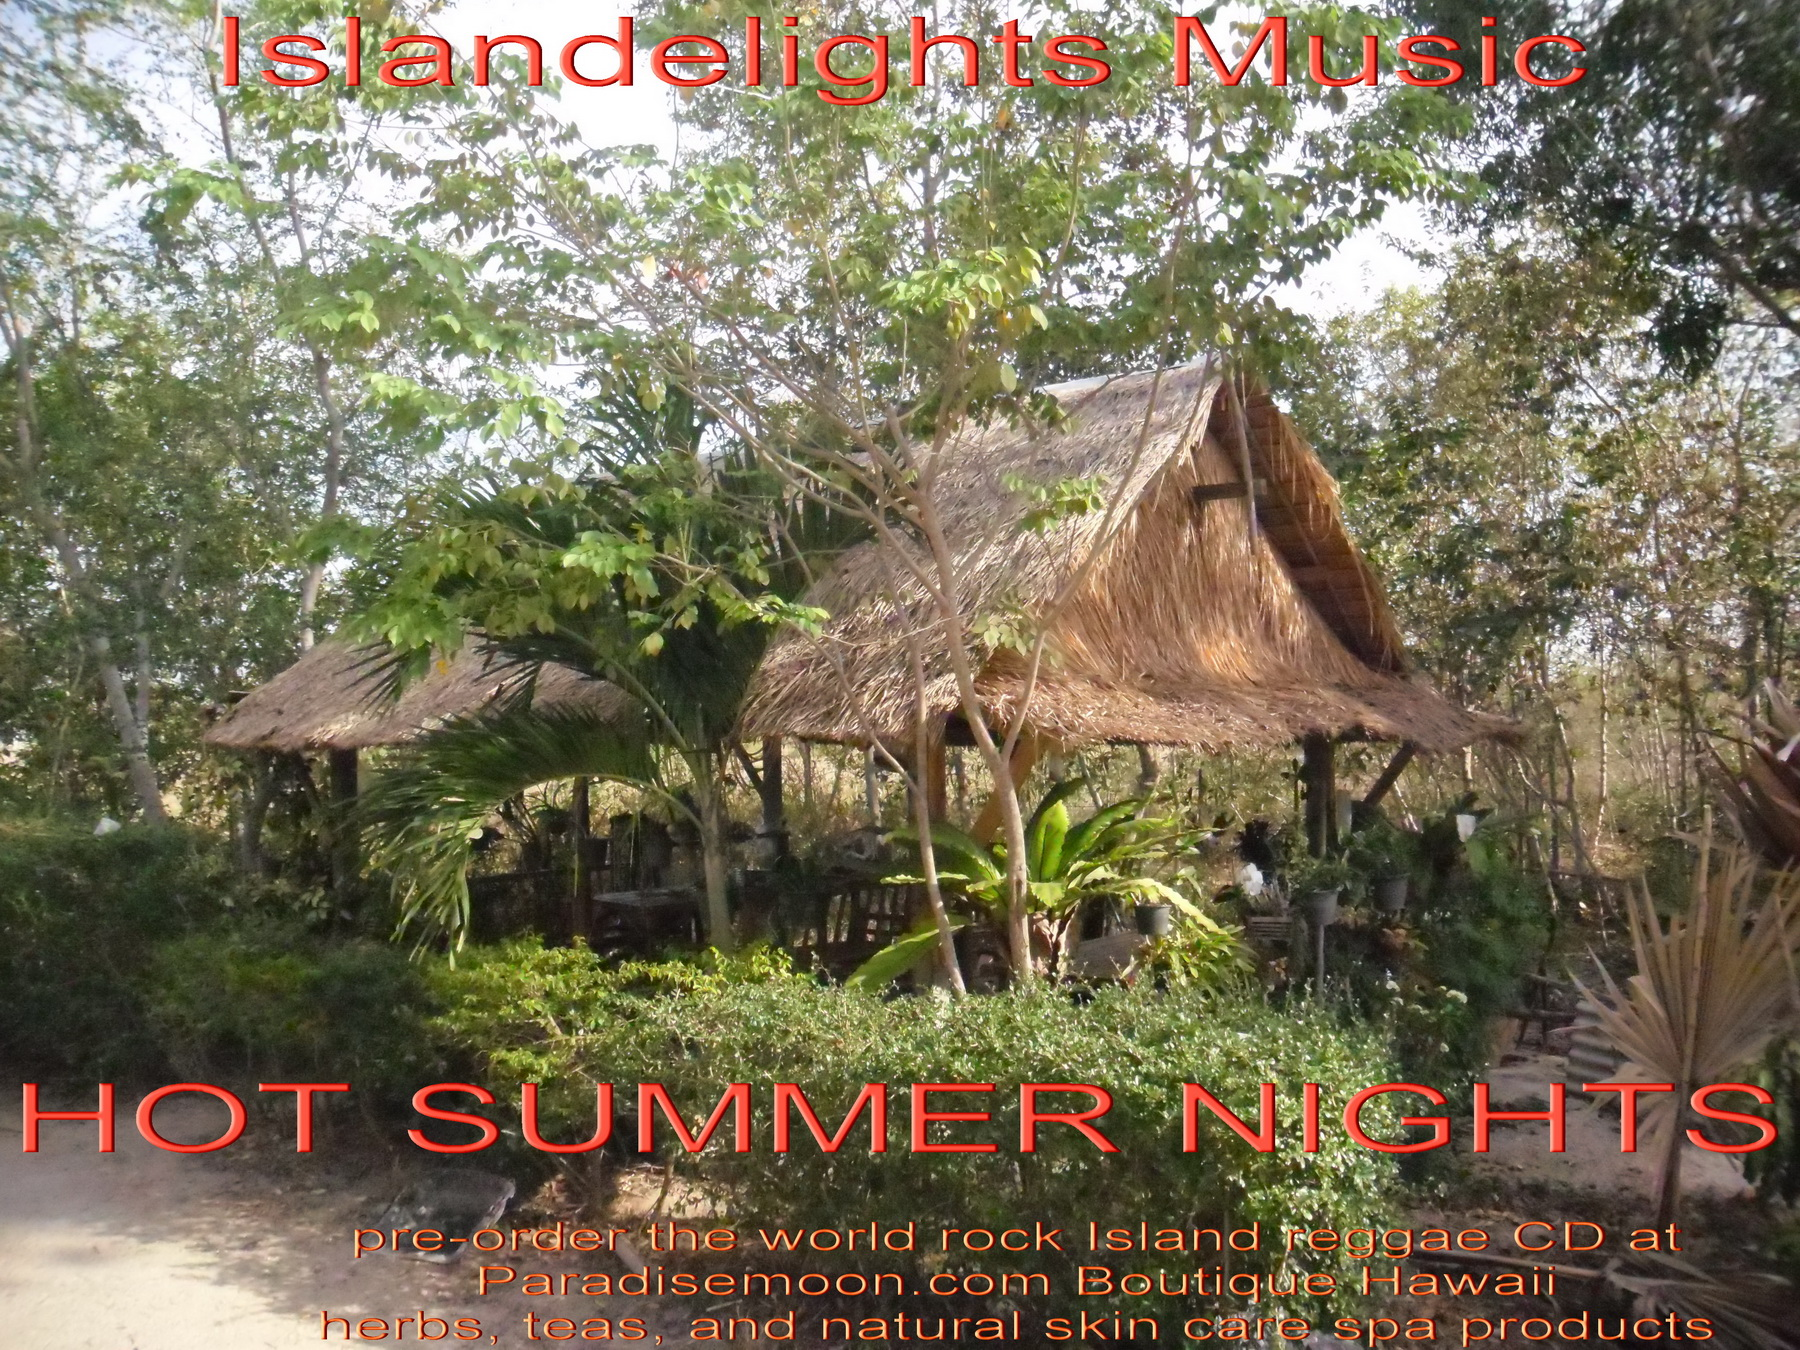 Tomy Gunn's HOT SUMMER NIGHTS CD coming to iTunes Amazon, Bandcamp.